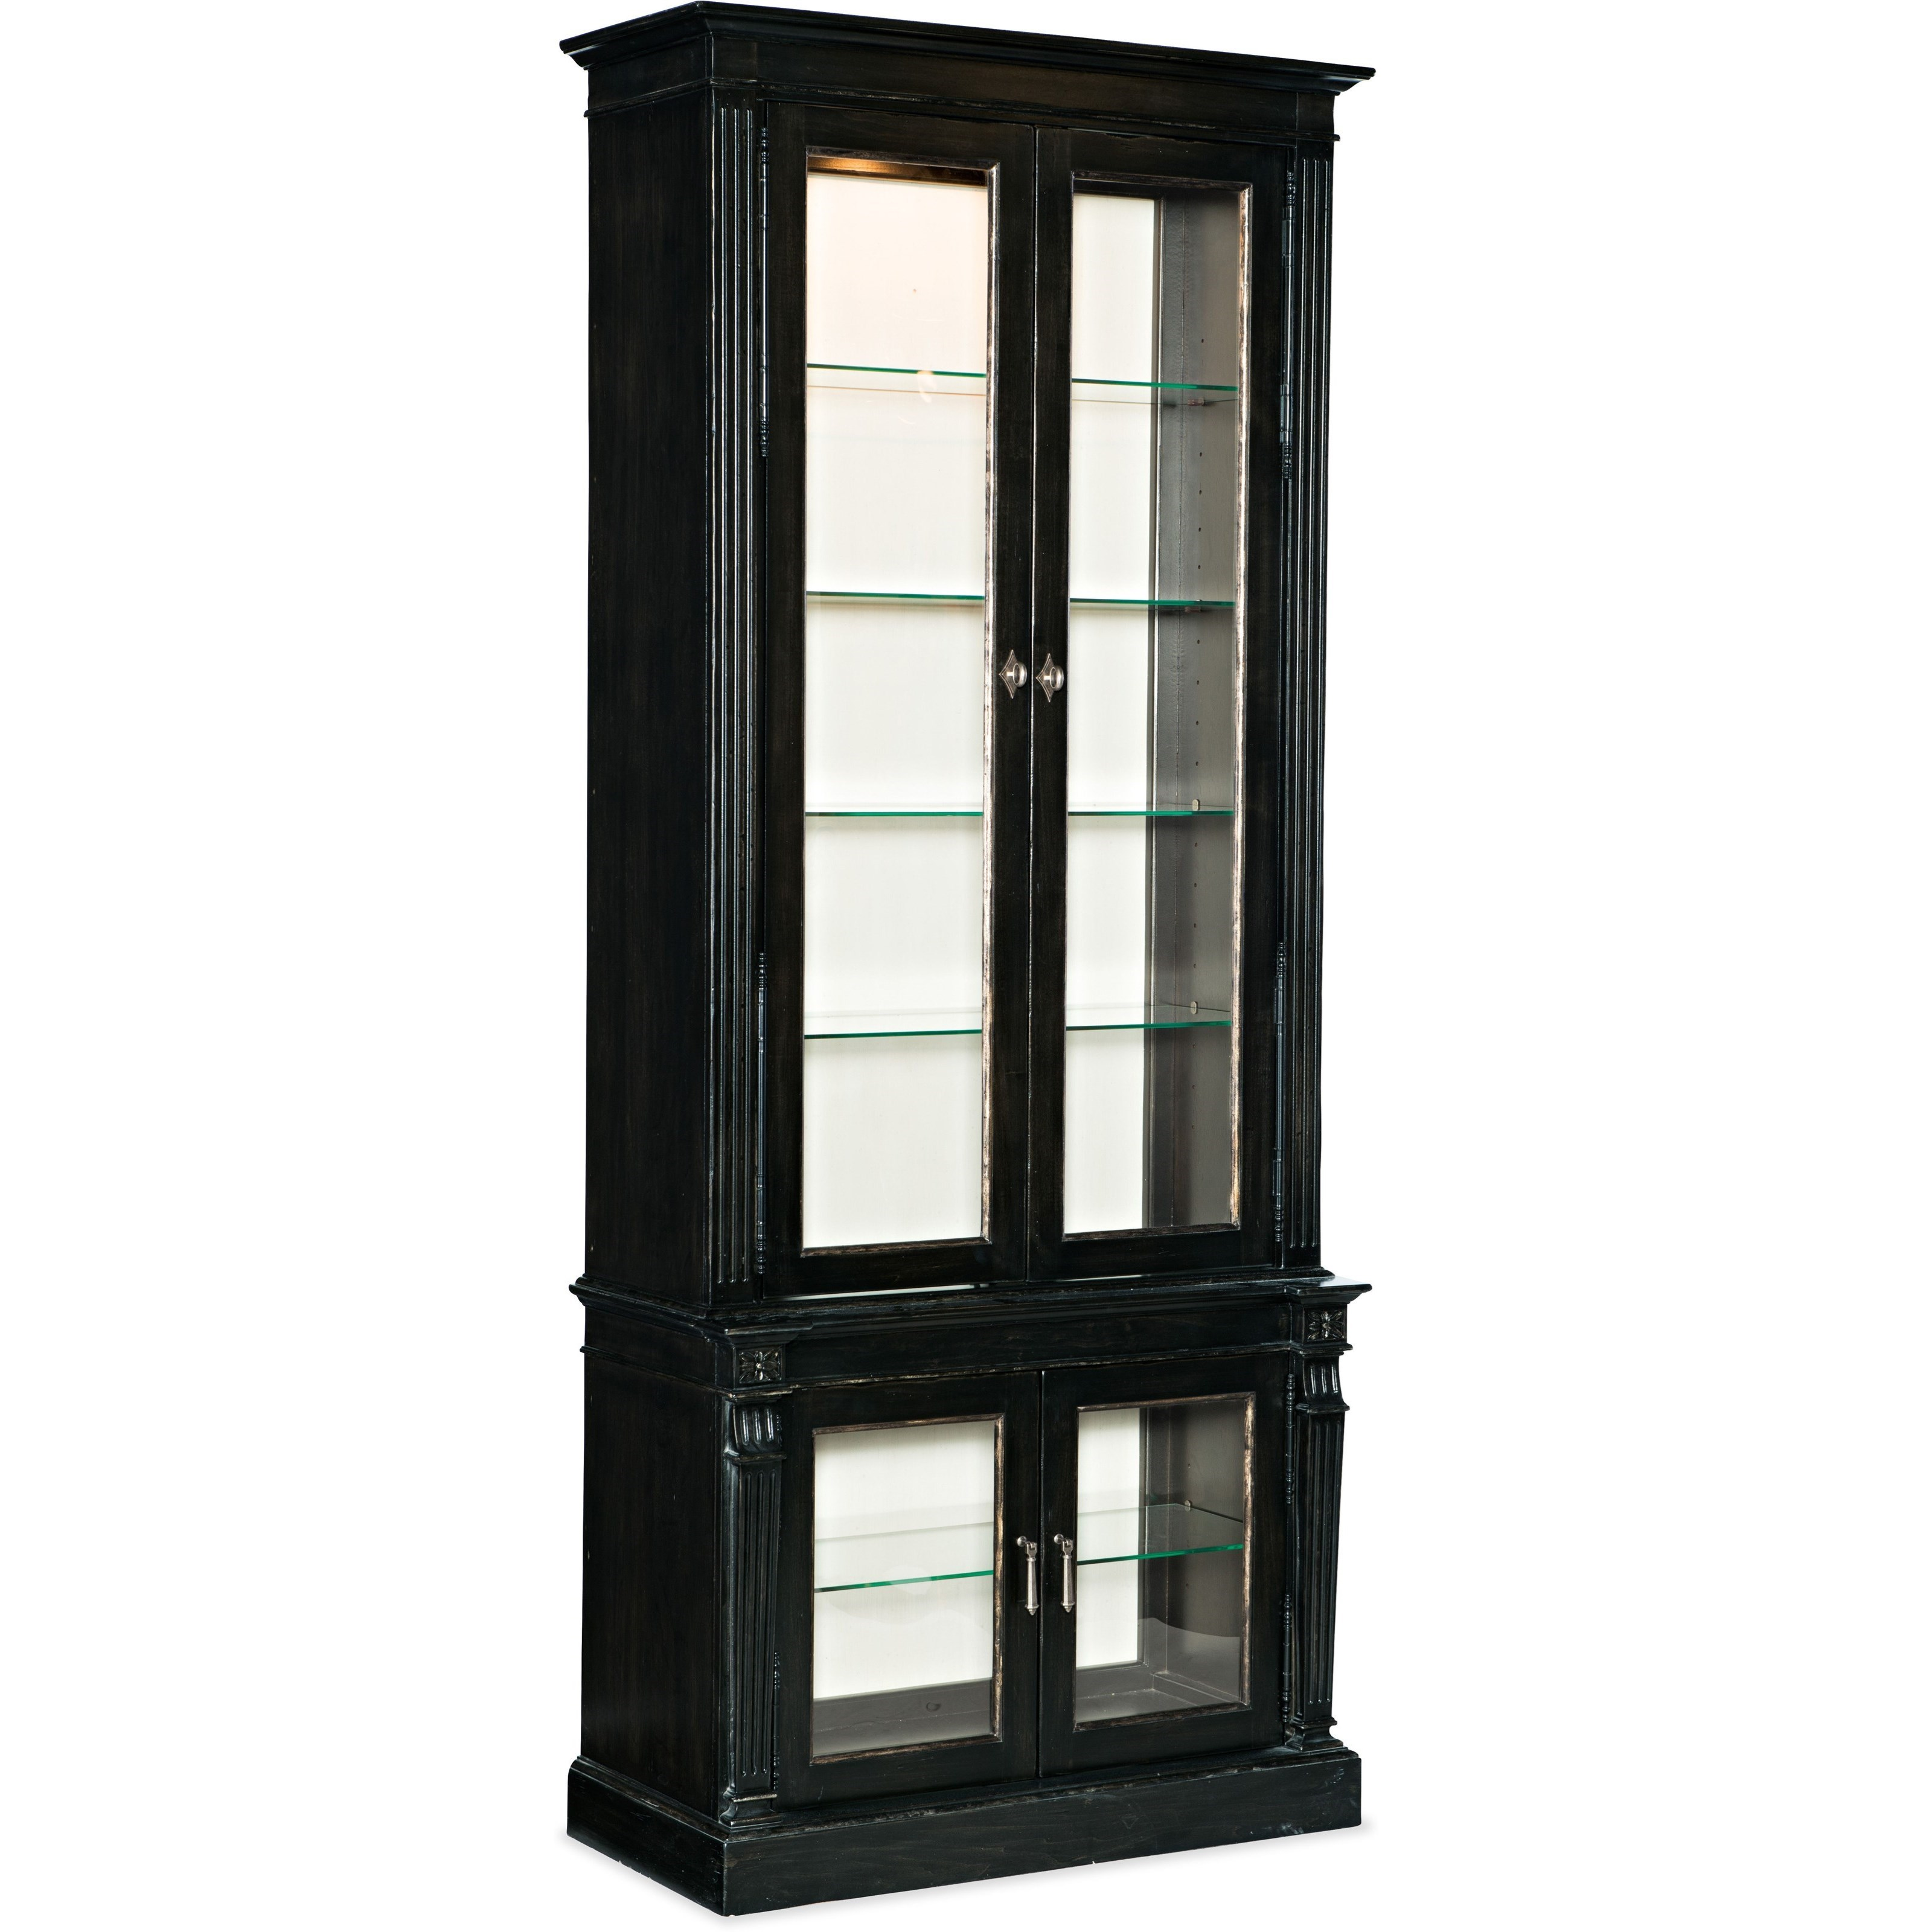 Sanctuary Display Cabinet Noir by Hooker Furniture at Alison Craig Home Furnishings